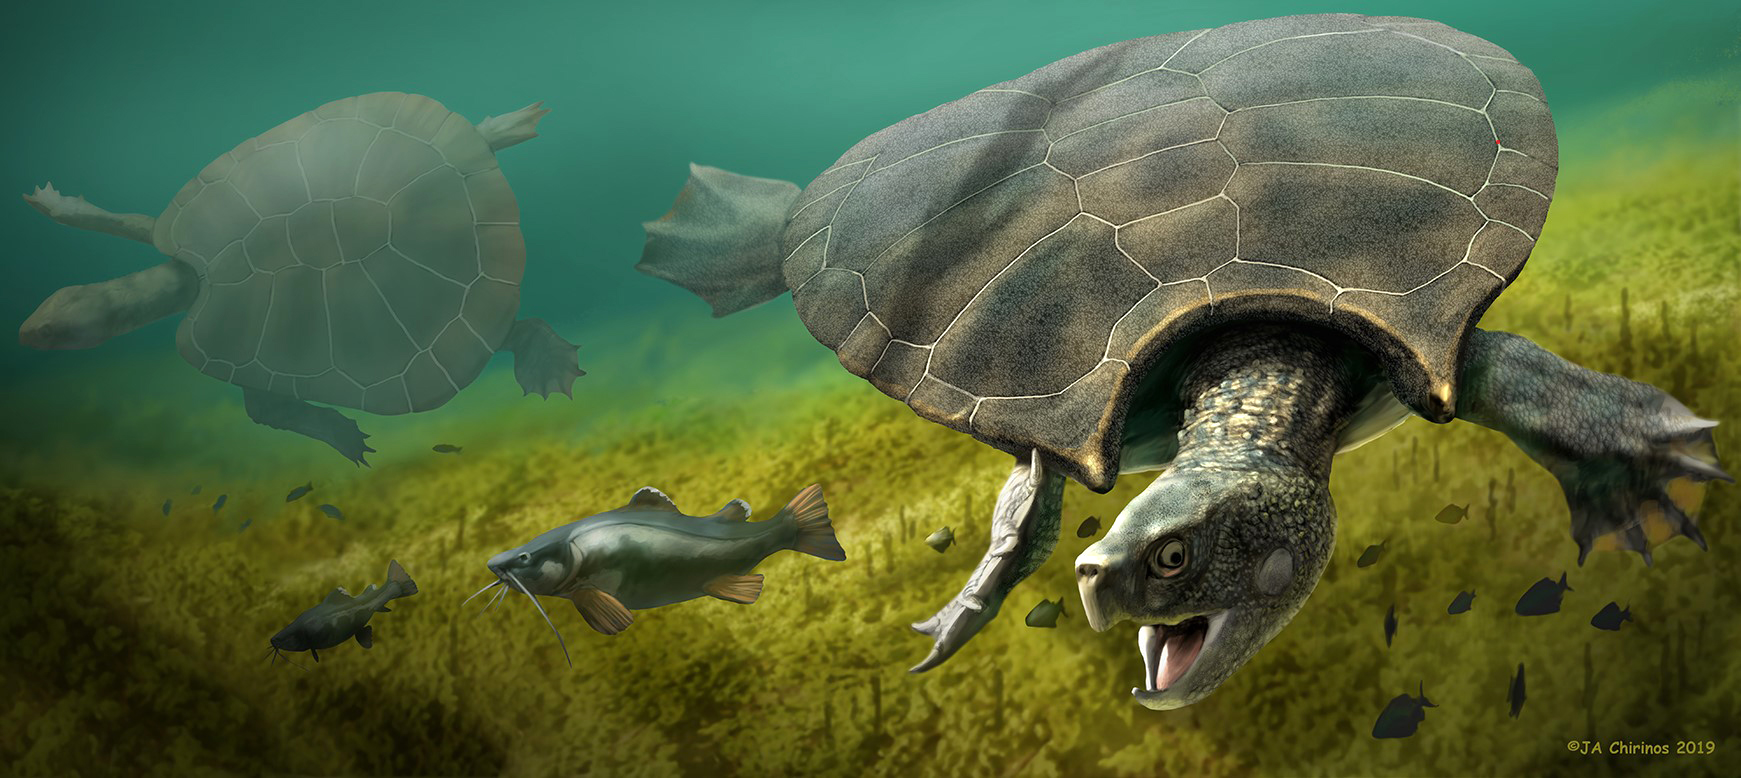 Biggest turtle that ever lived had 10 foot shell with horns